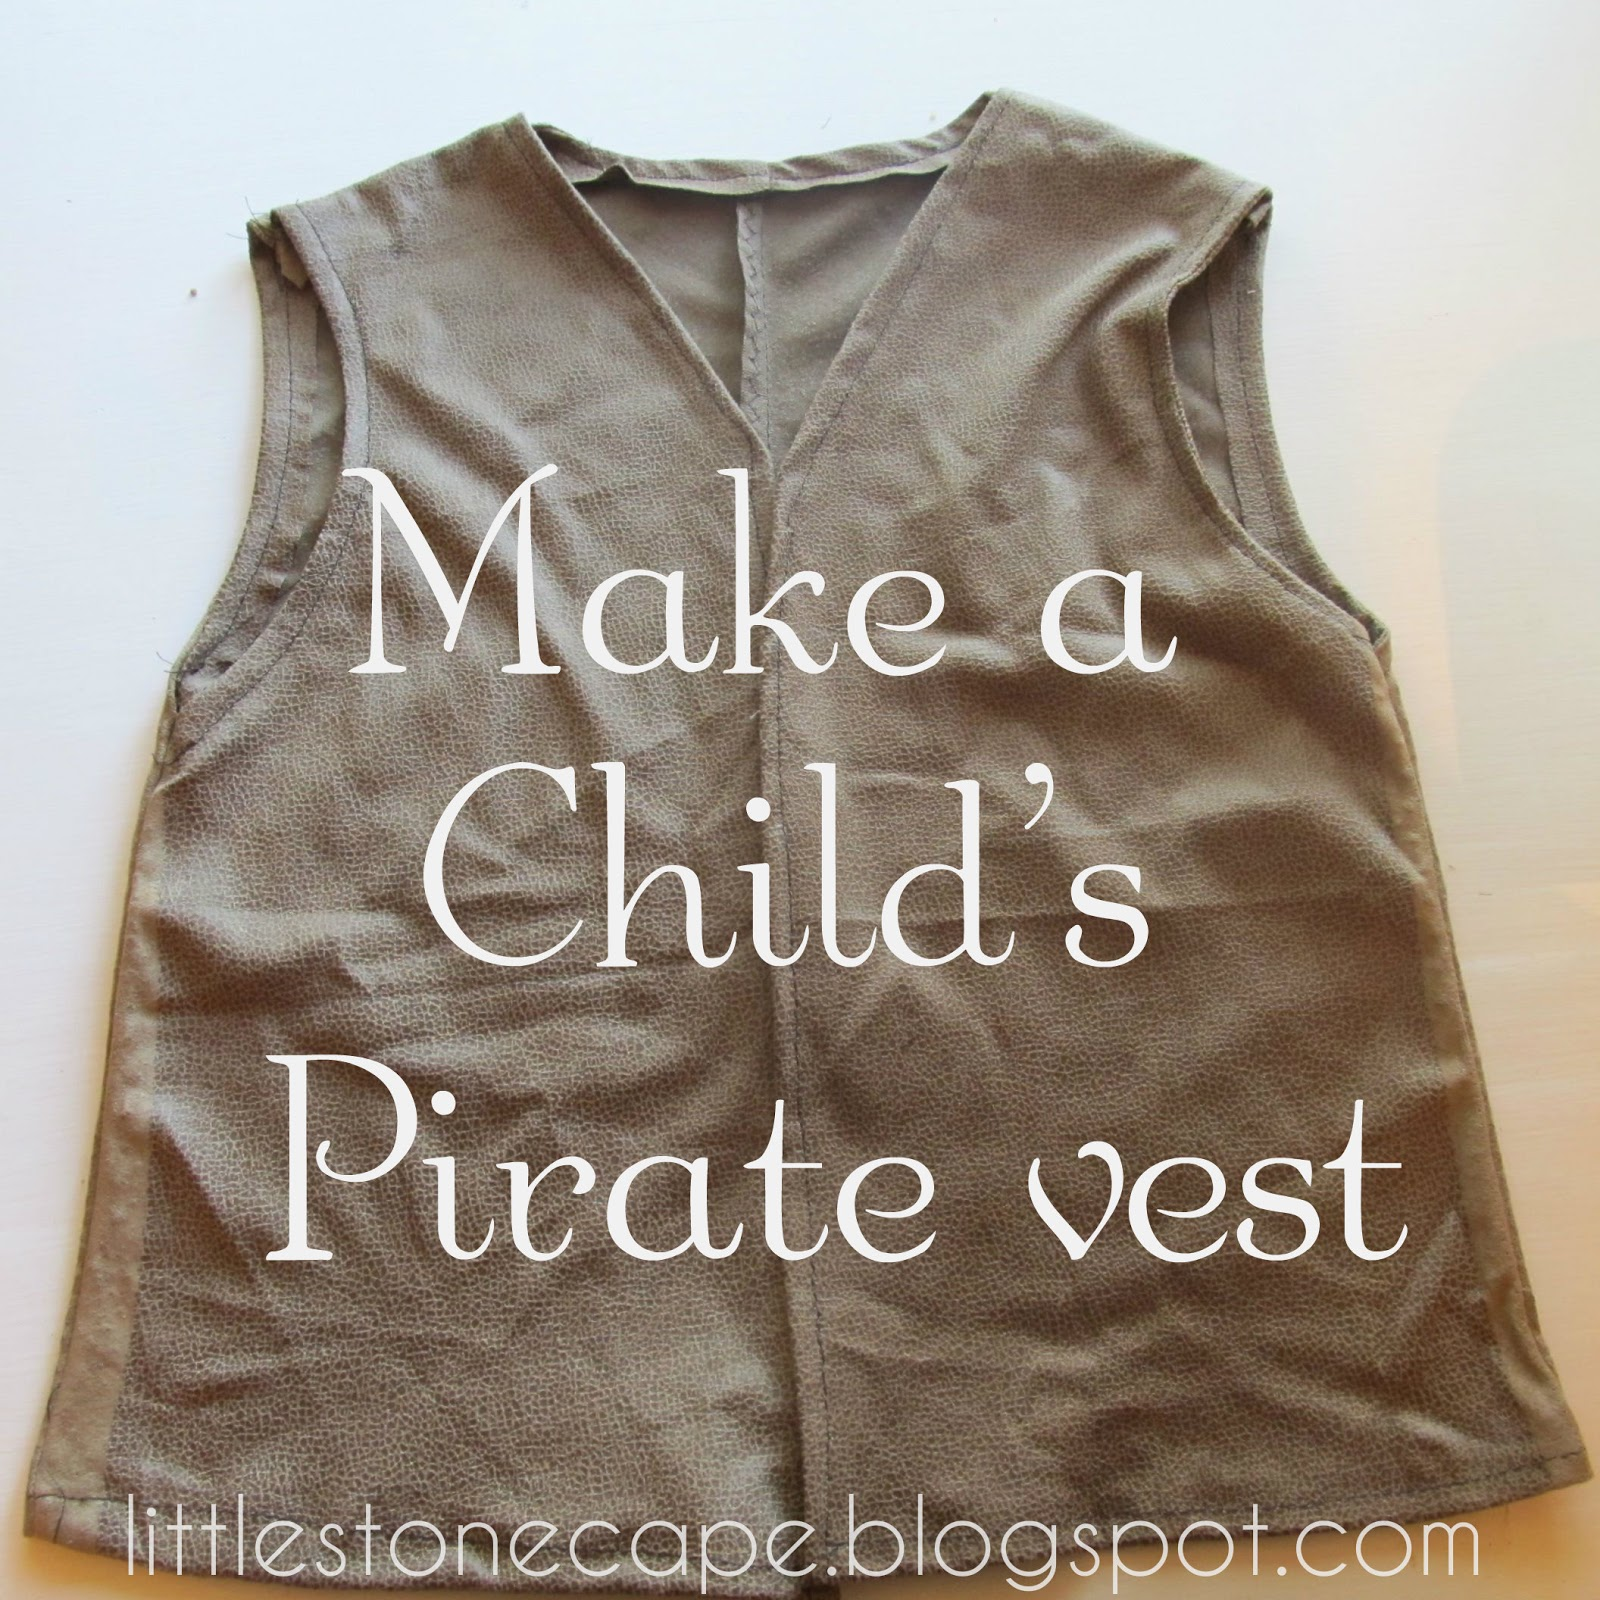 Halloween Costume Series #5. Childu0027s Pirate Vest ... & In the Little Stone Cape: Childu0027s Pirate Vest